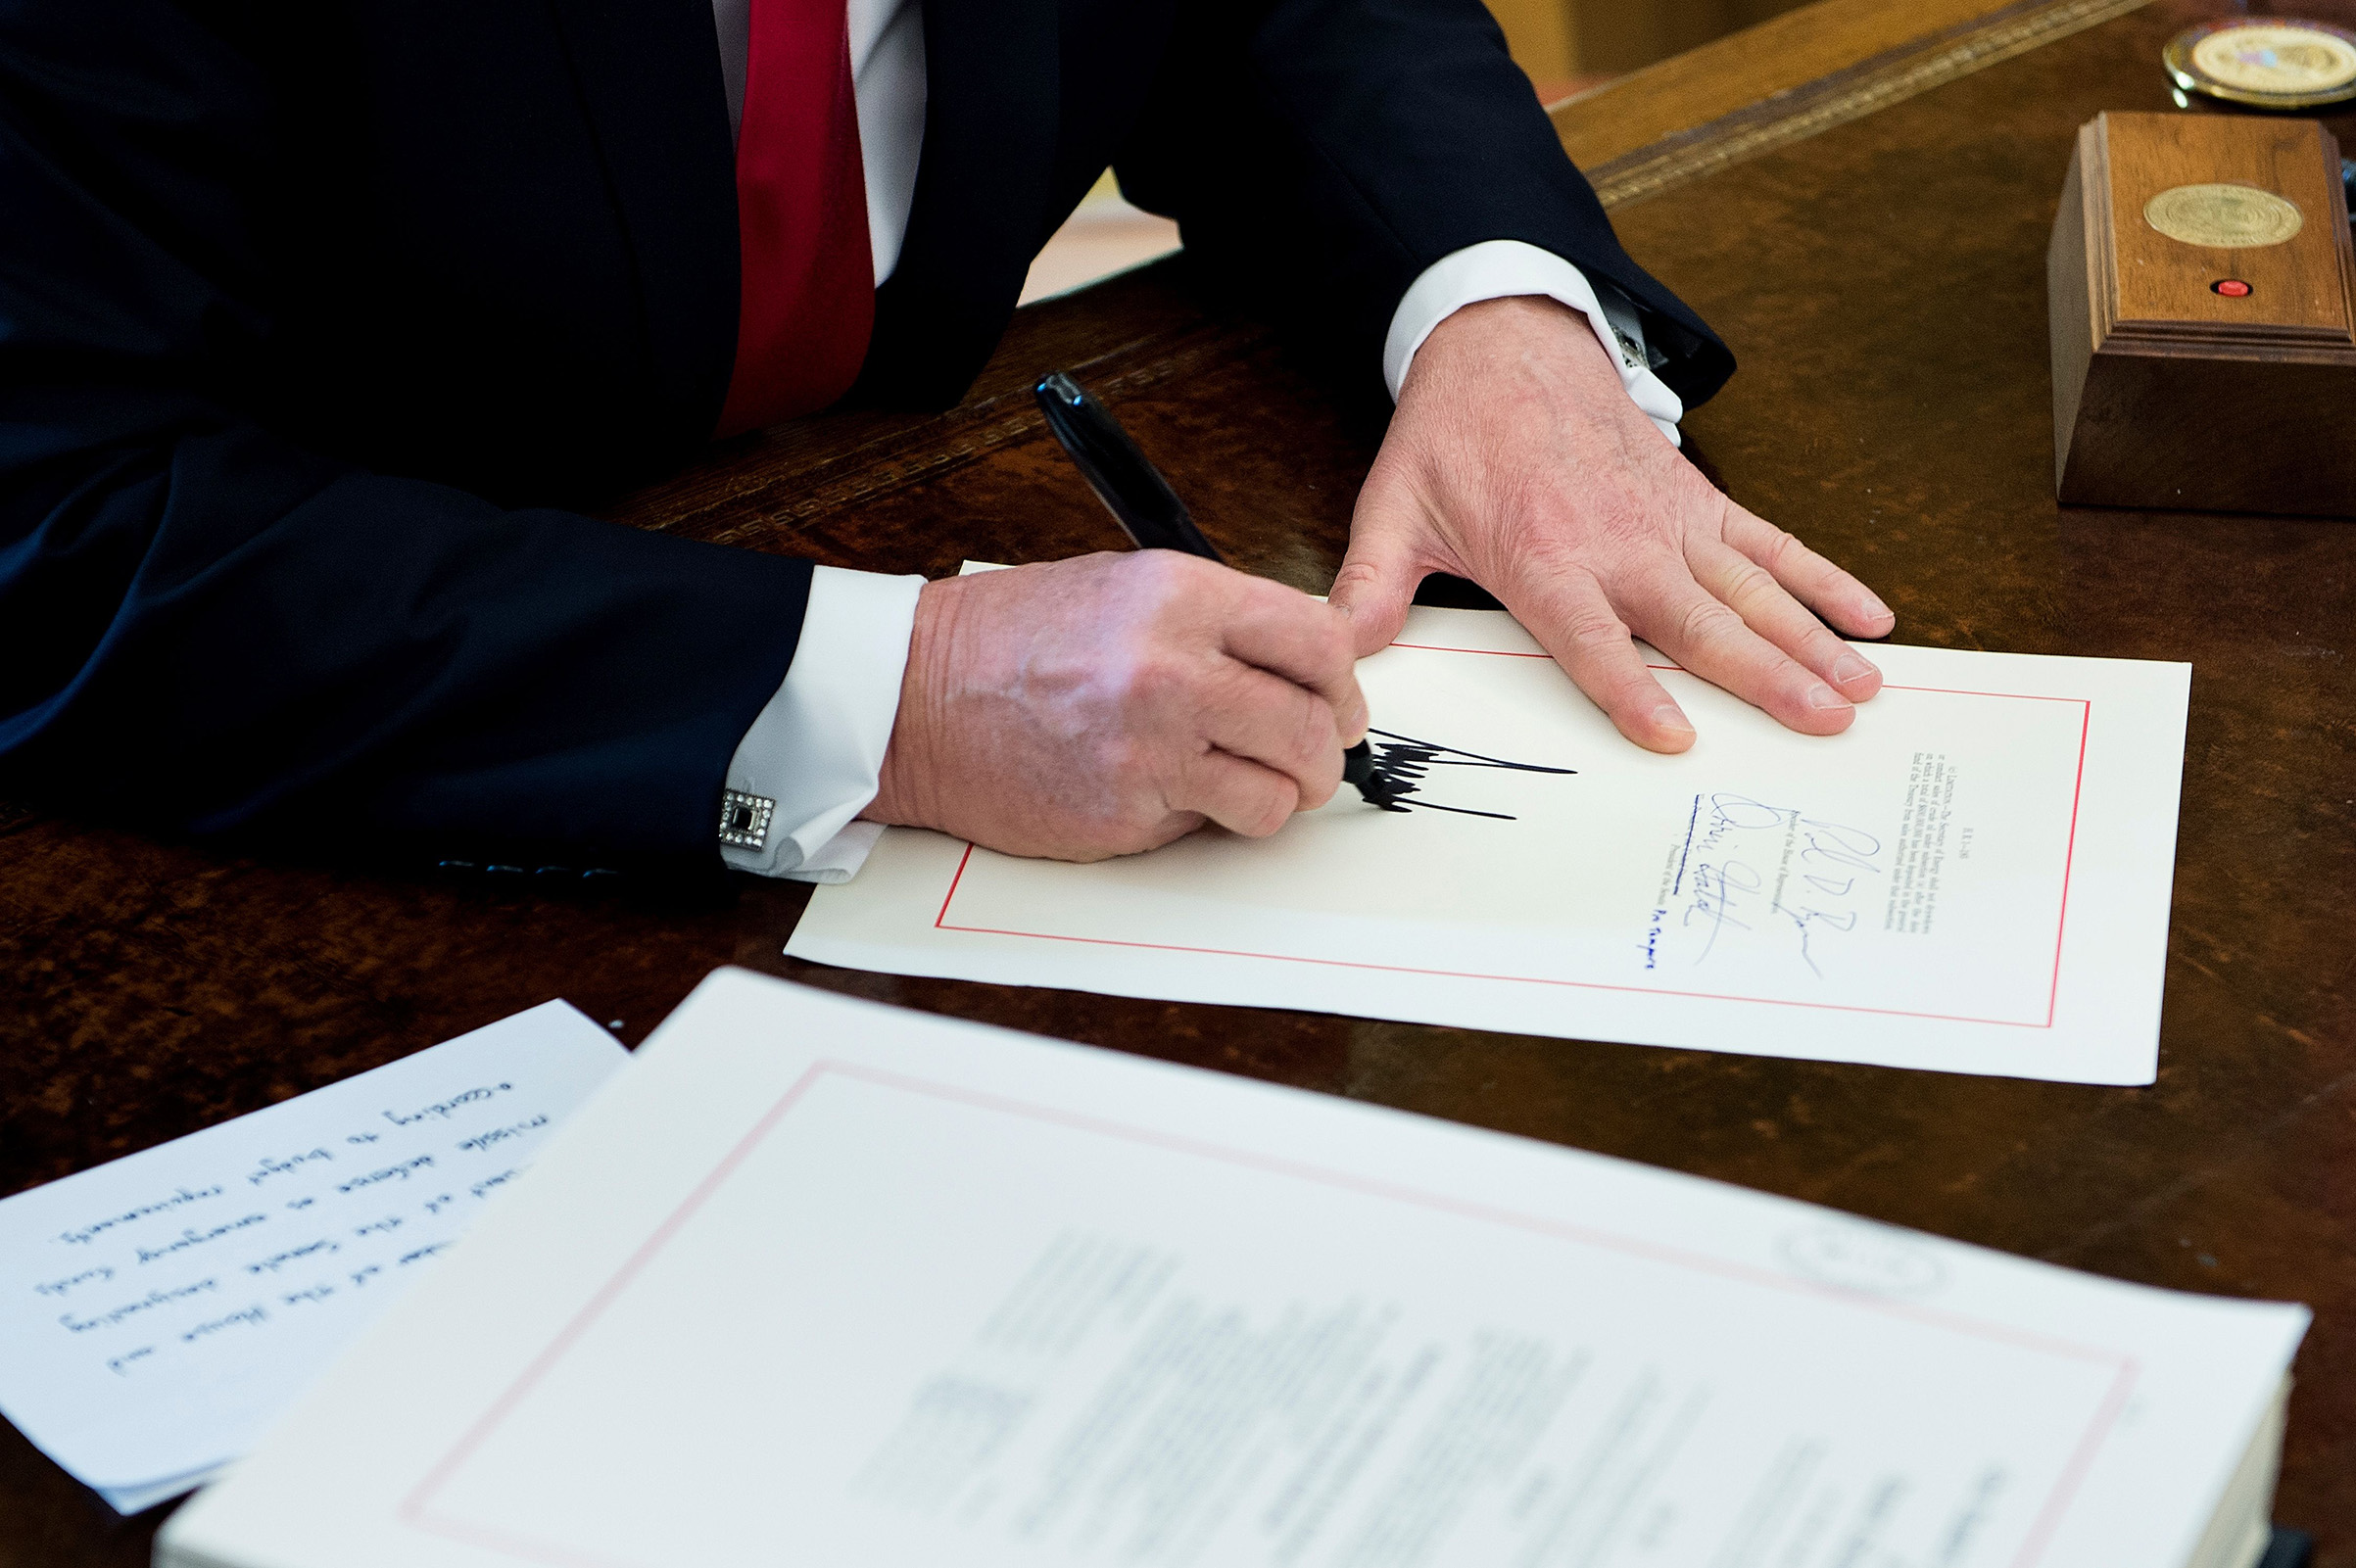 President Donald Trump signs the Tax Cut and Reform Bill in the Oval Office at The White House on Dec. 22, 2017.